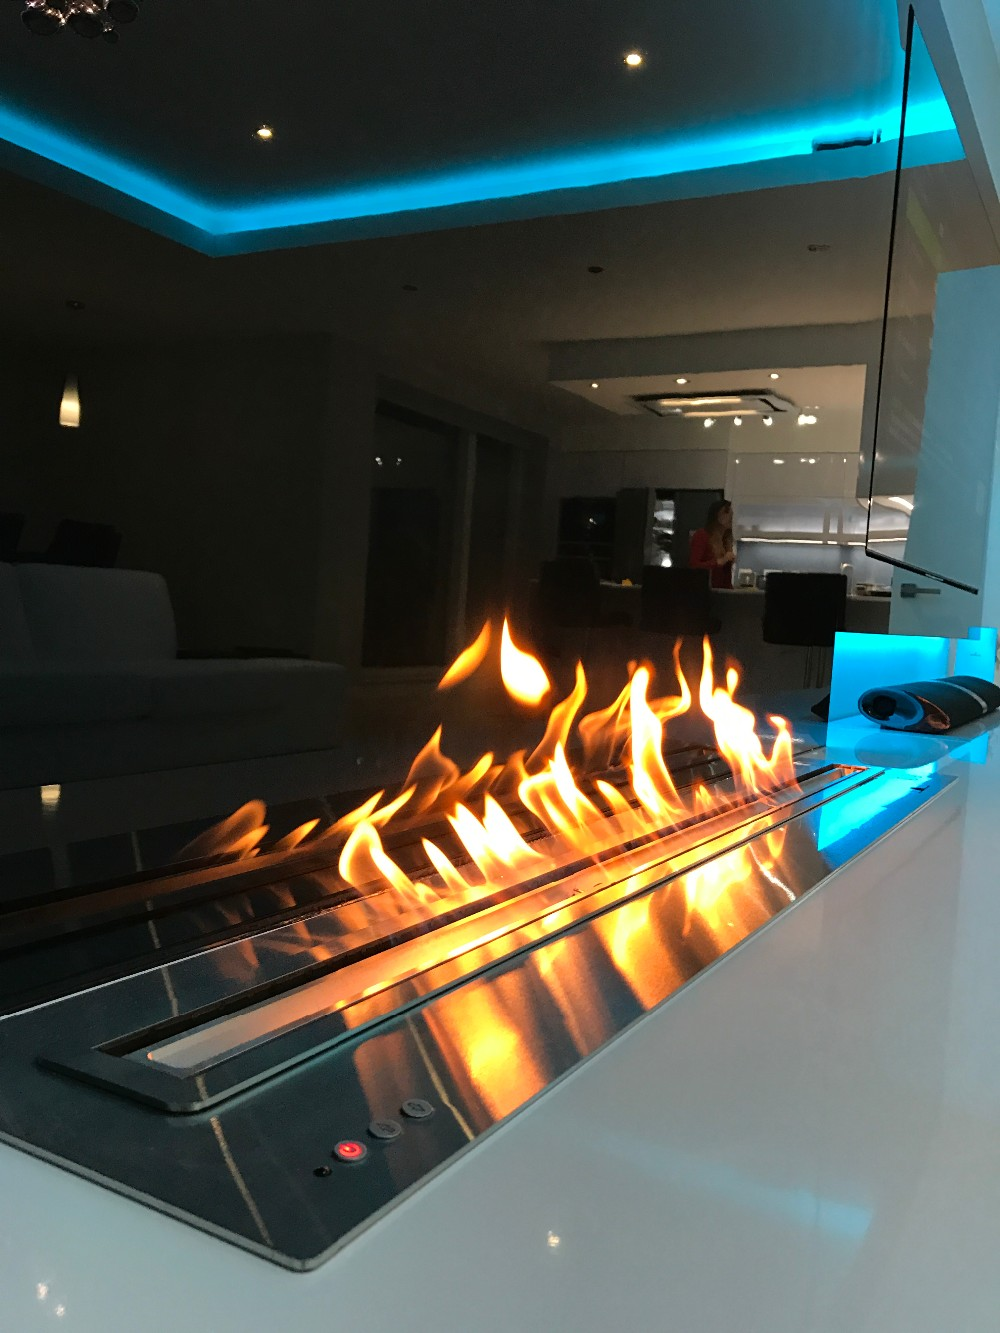 Hot Sale 30 Inches Ethanol Fire Ventless Fireplace Insert With Remote Control